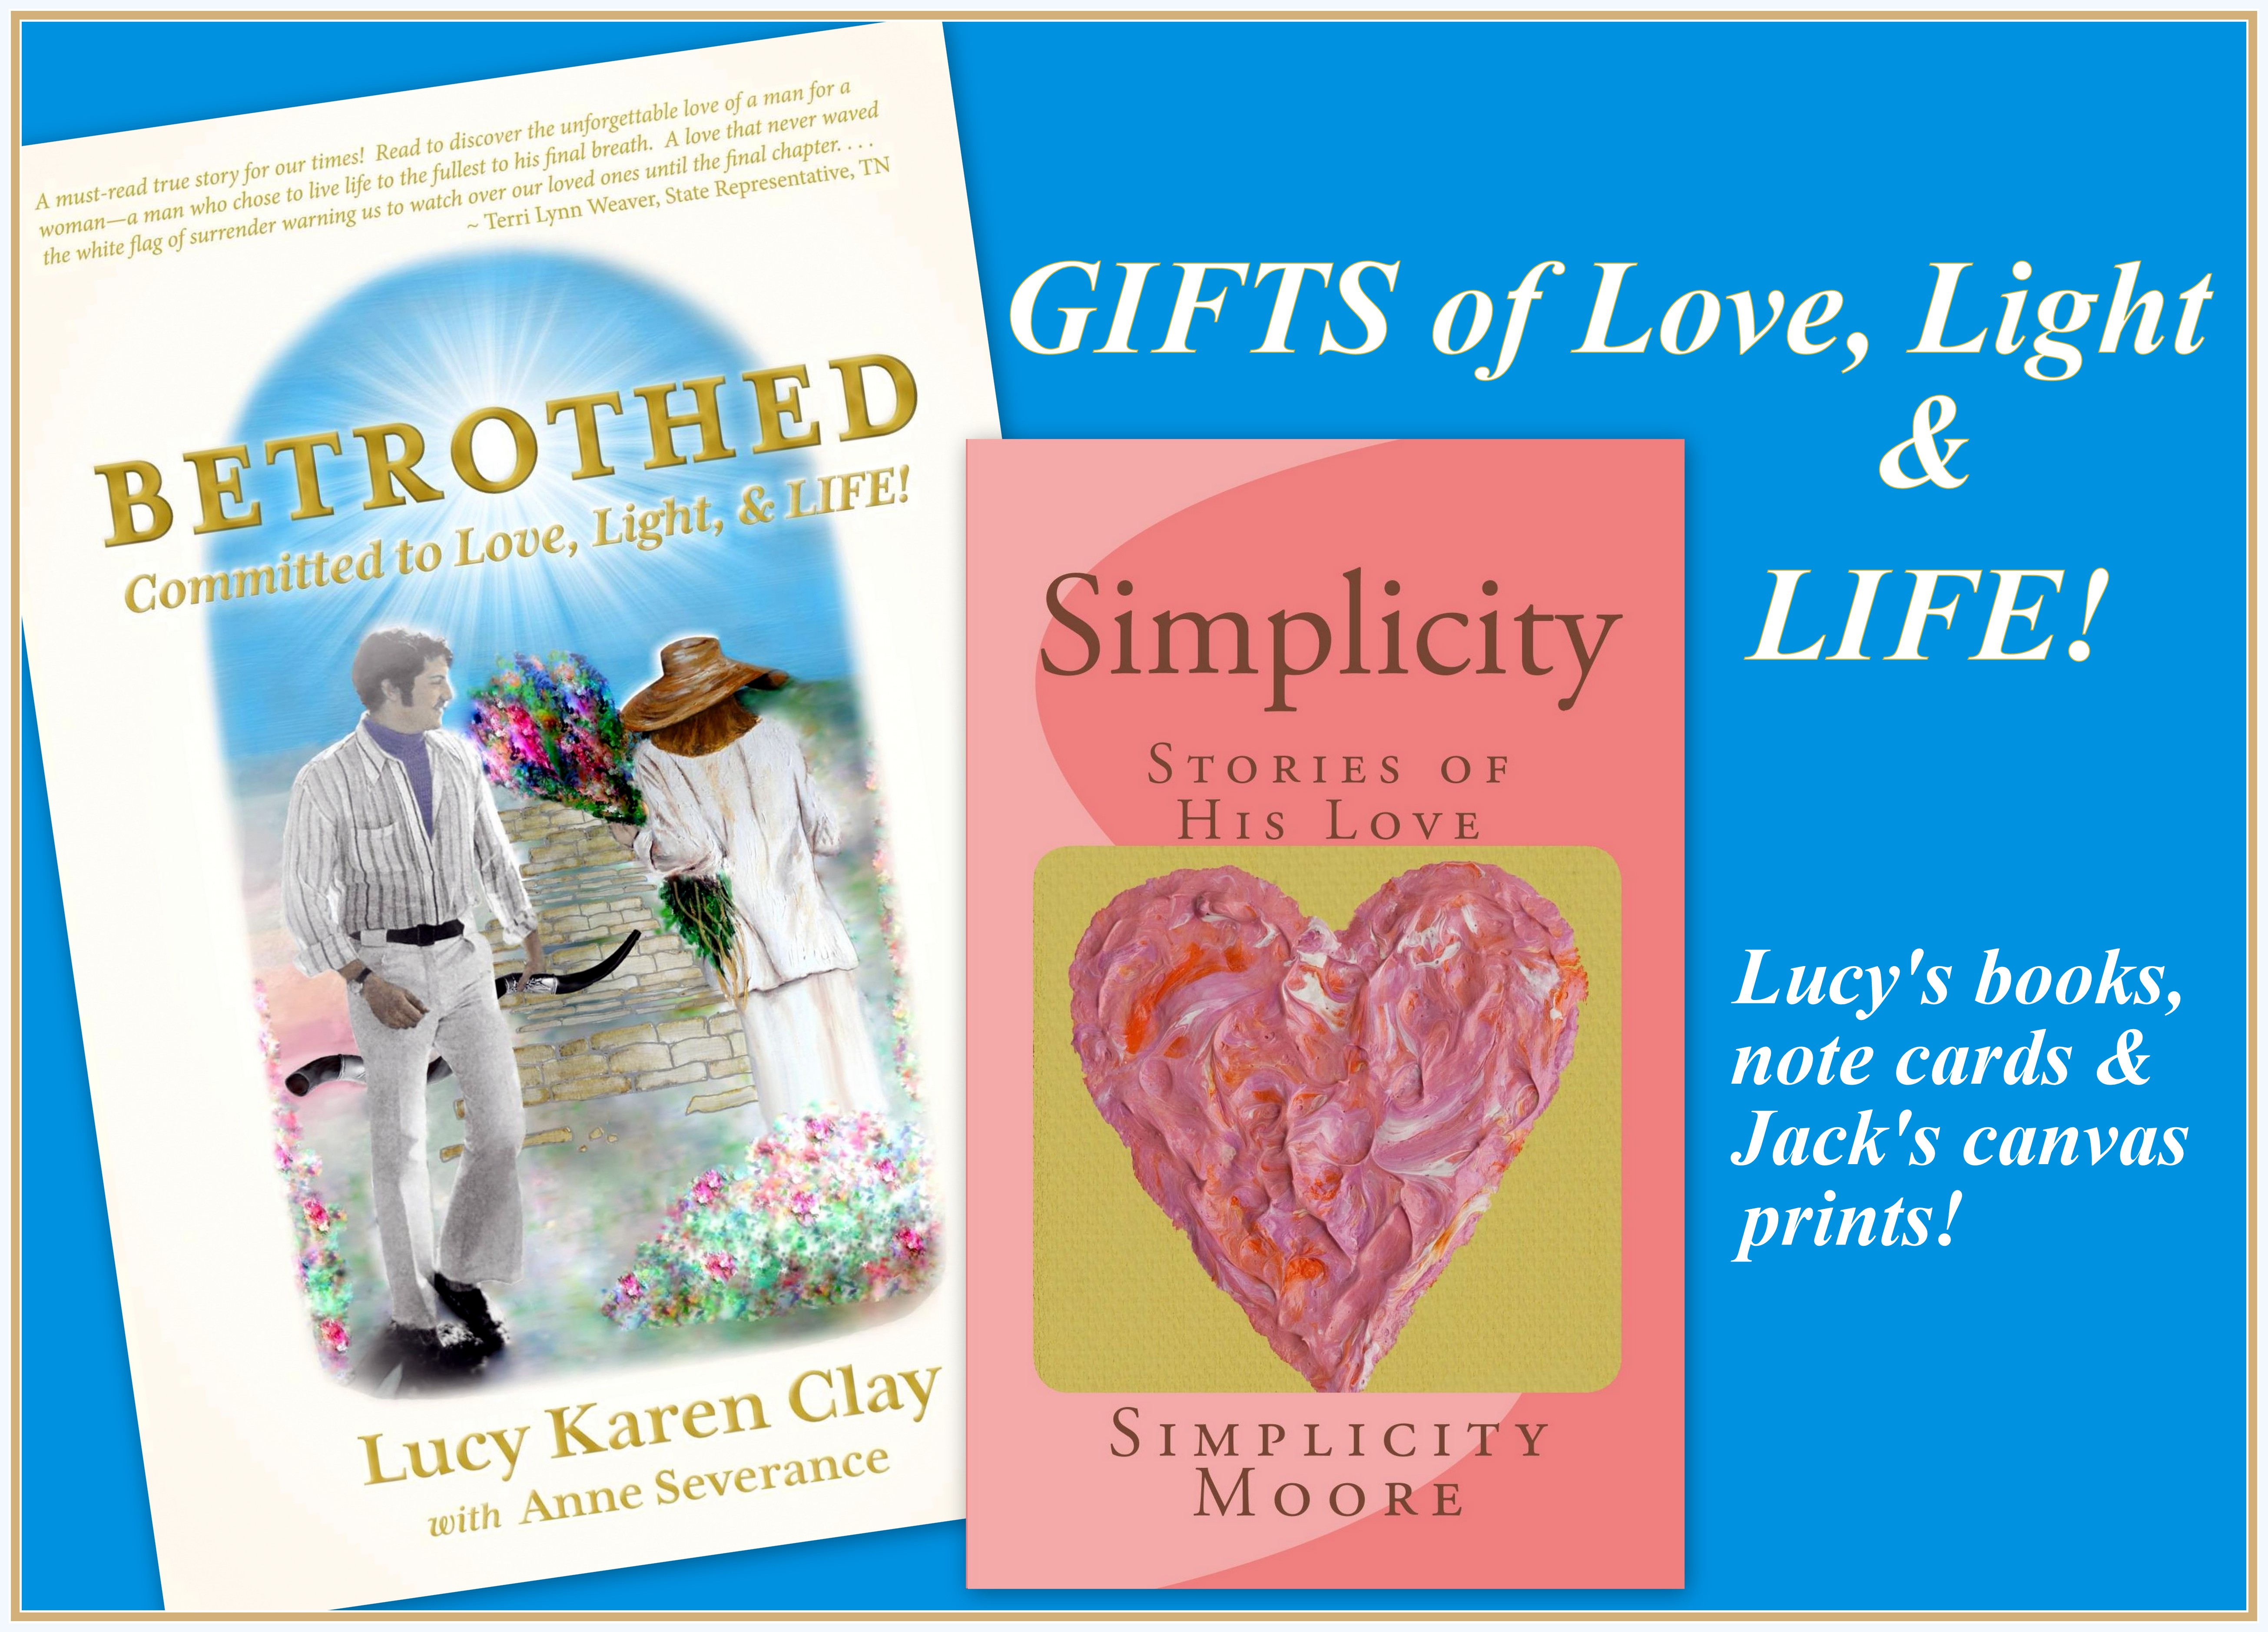 Gifts of Love, Light and LIFE for Christmas and Valentine's Day!